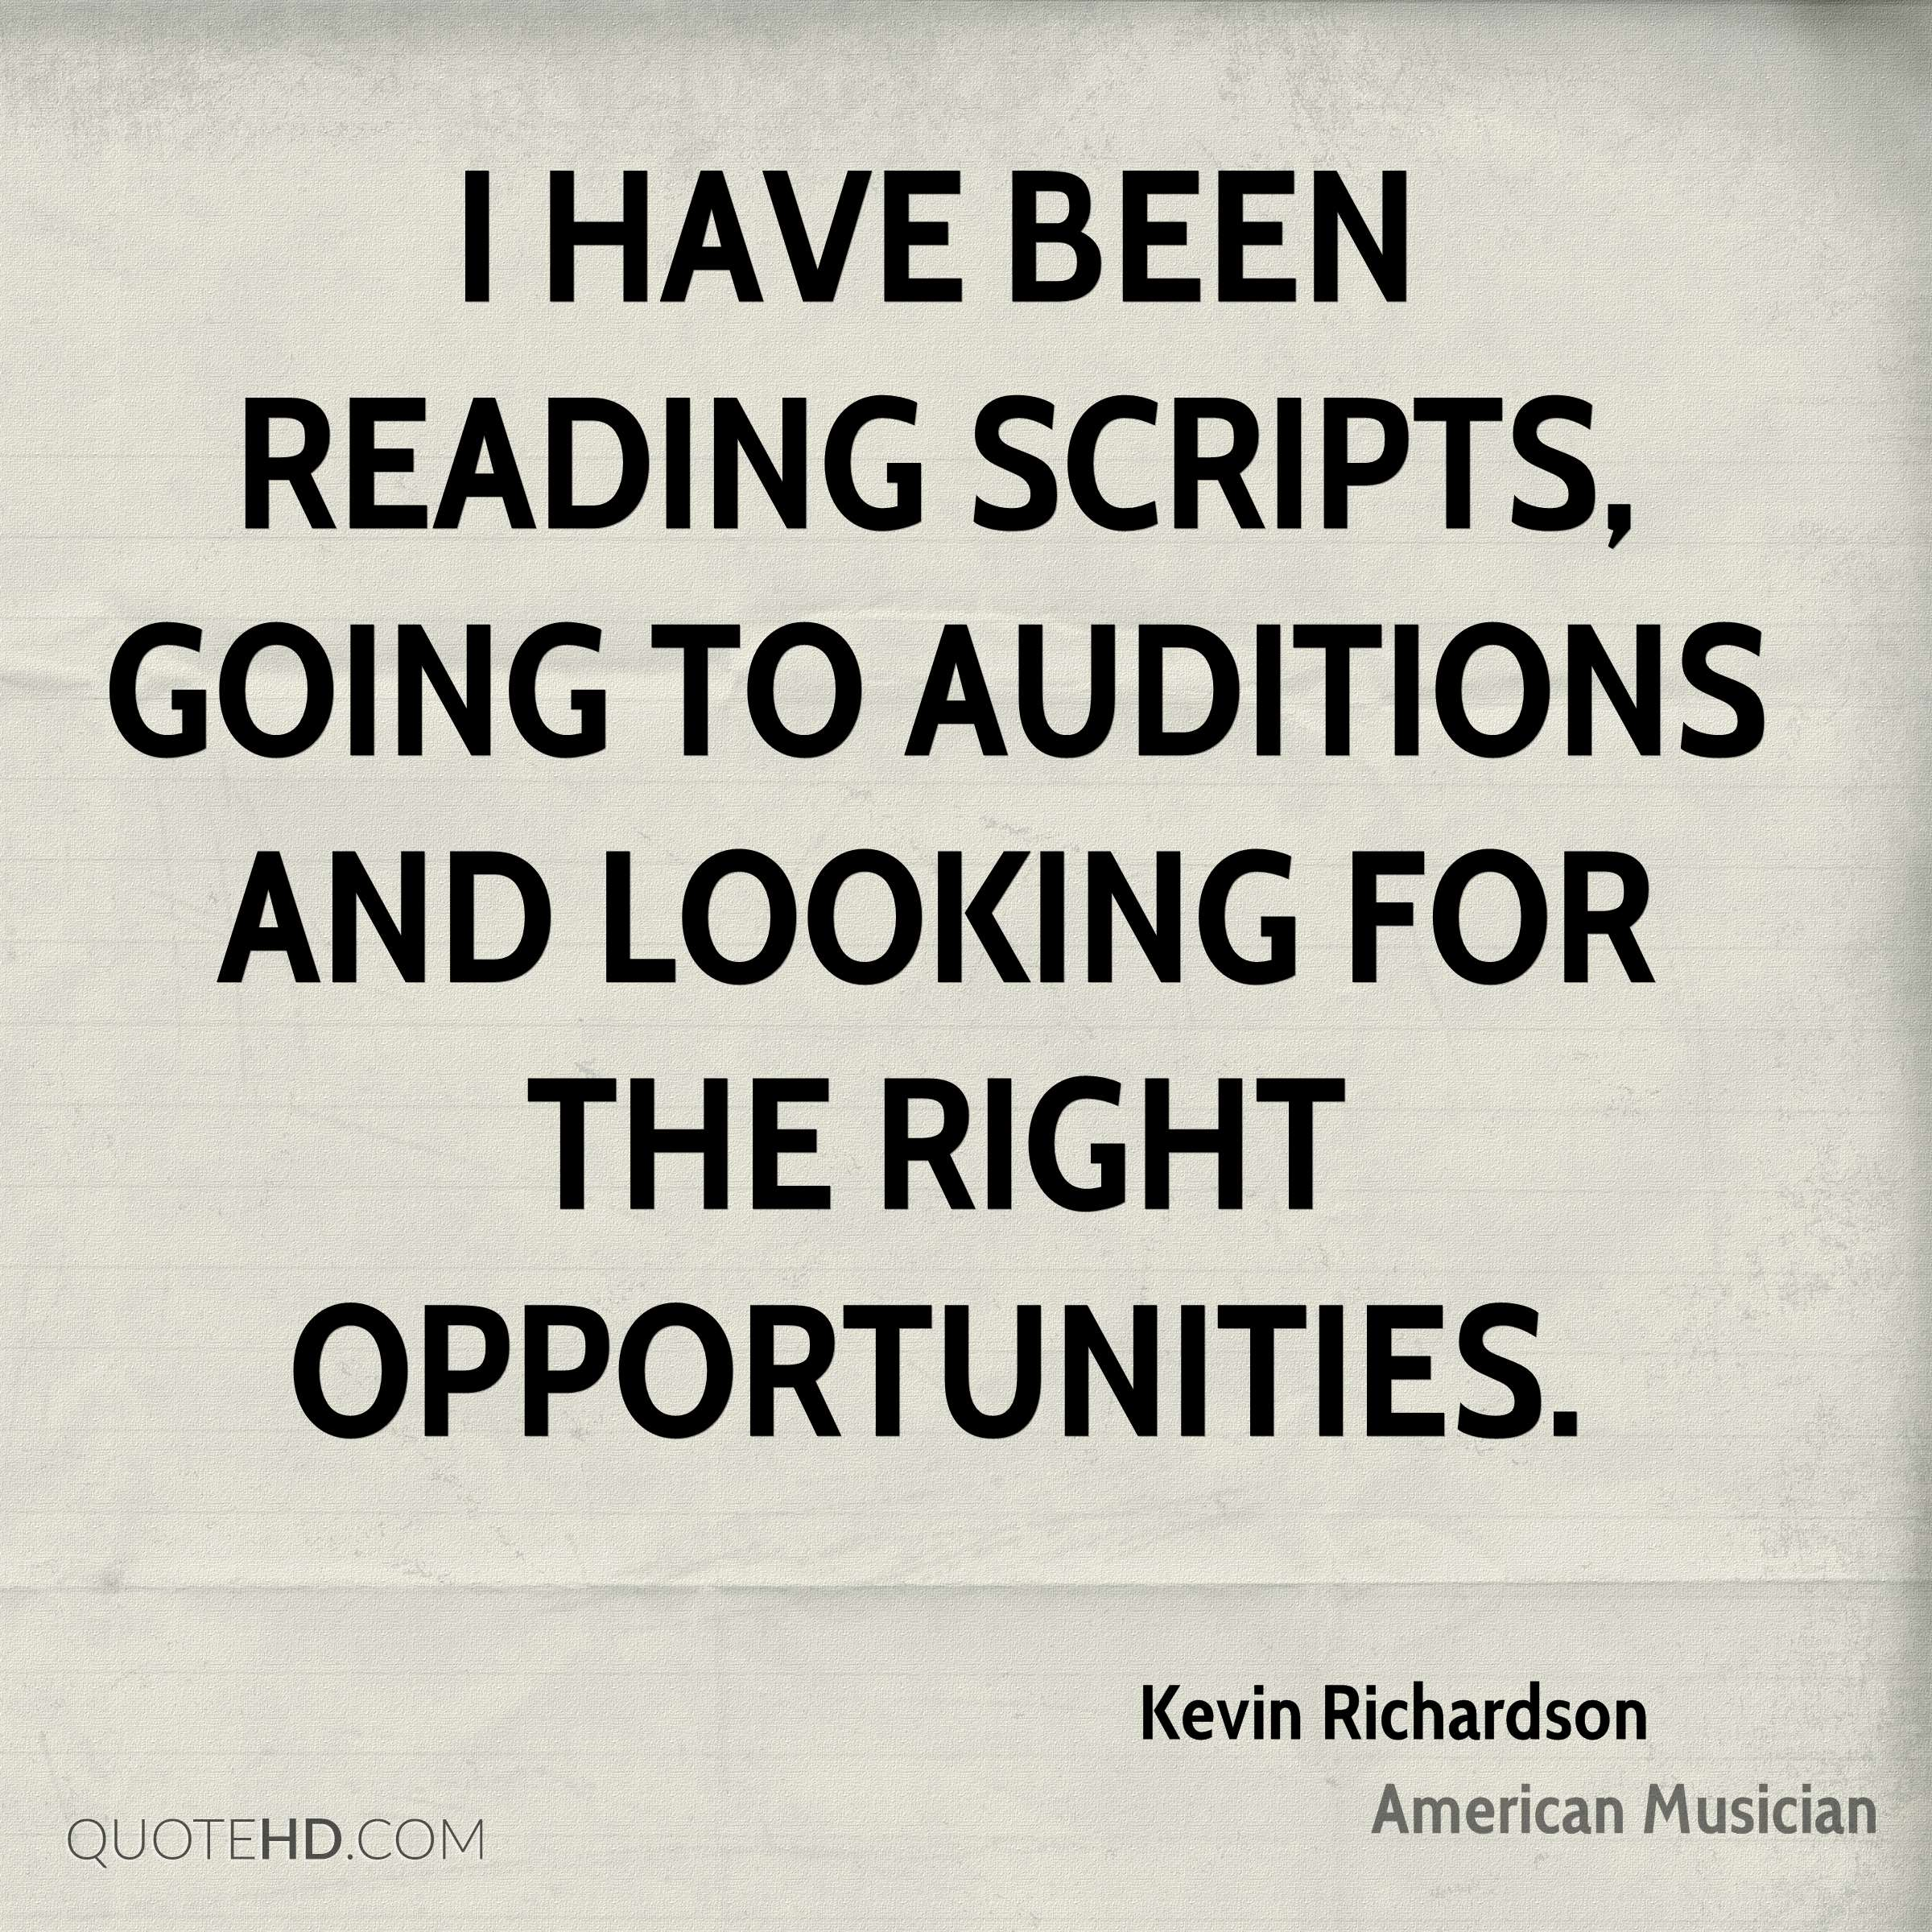 I have been reading scripts, going to auditions and looking for the right opportunities.